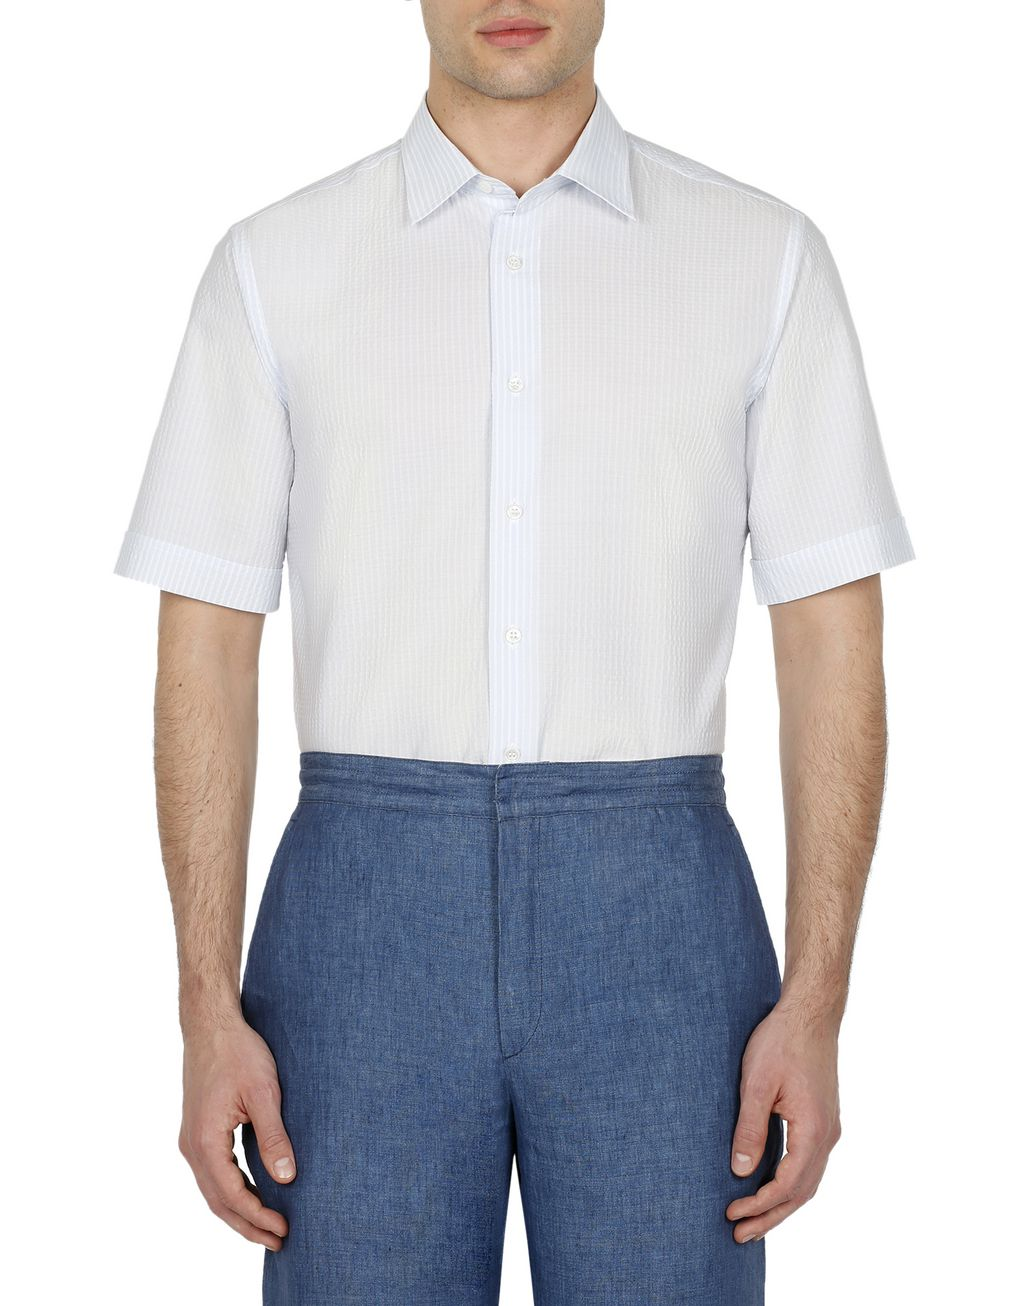 BRIONI Light Blue and White Seersucker Shirt Leisure shirt Man r